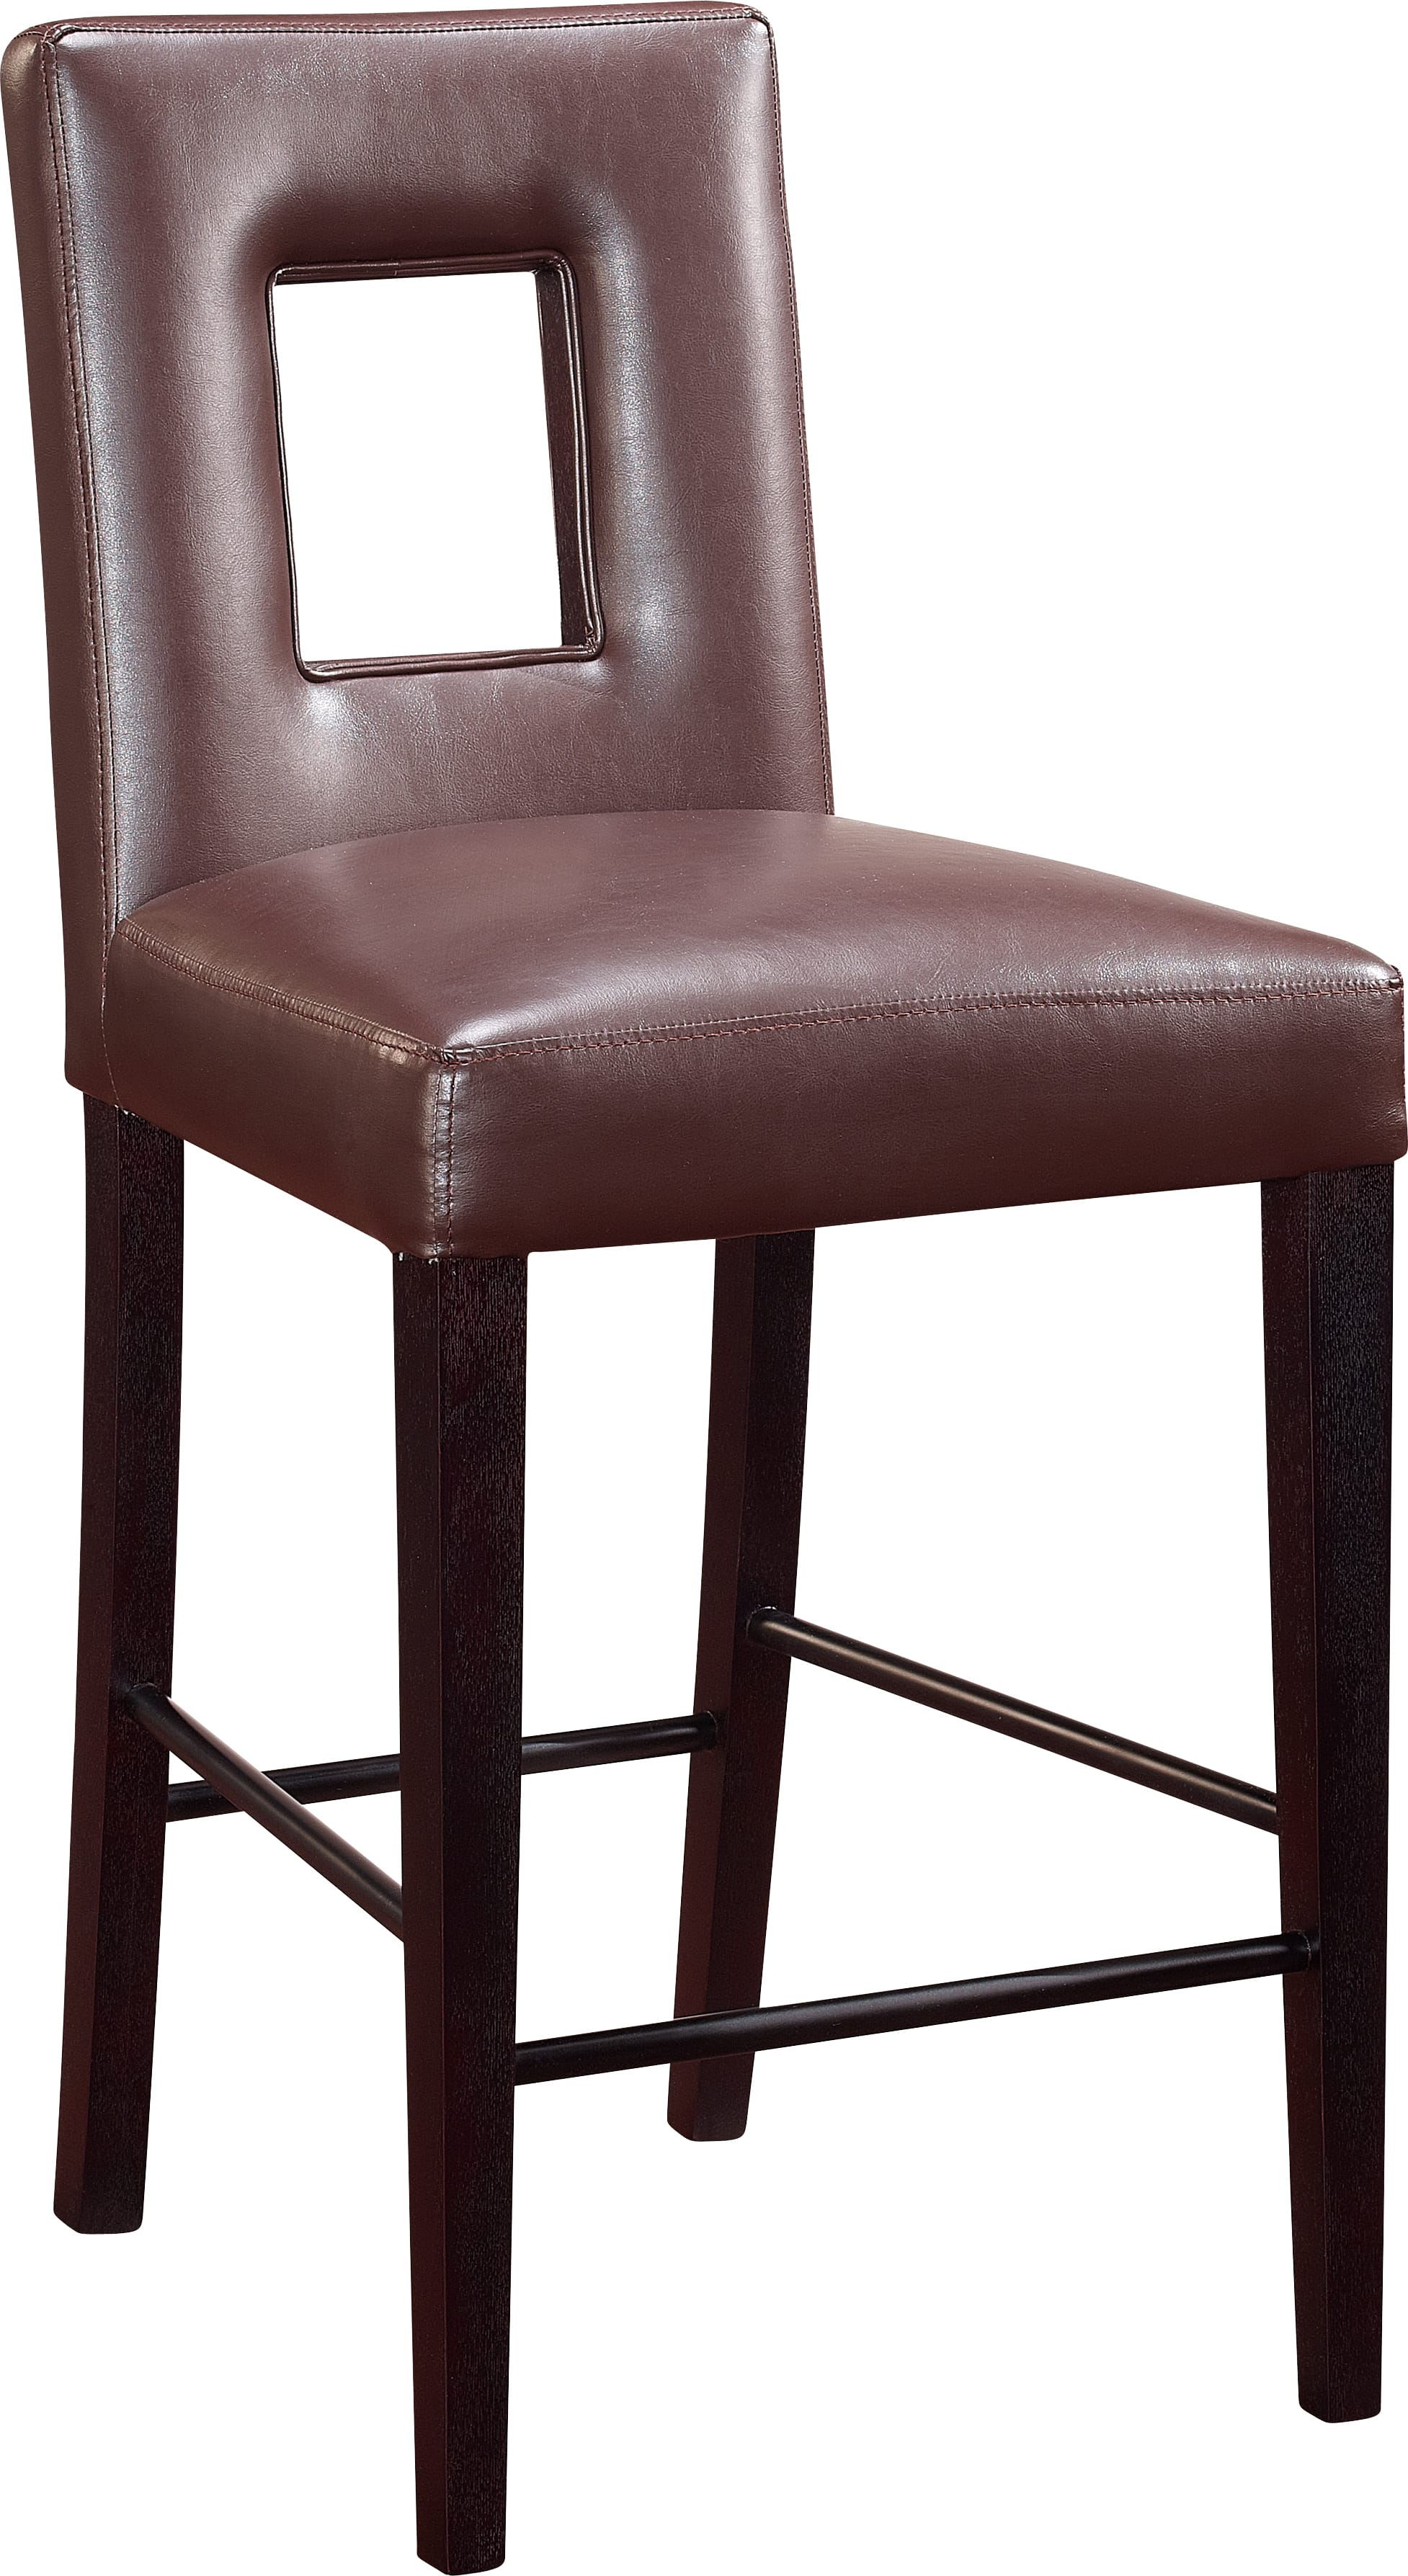 Bar Stool DG072 Brown Set of 2 by Global Furniture : DG072BS BR from futonland.com size 1954 x 3576 jpeg 3010kB